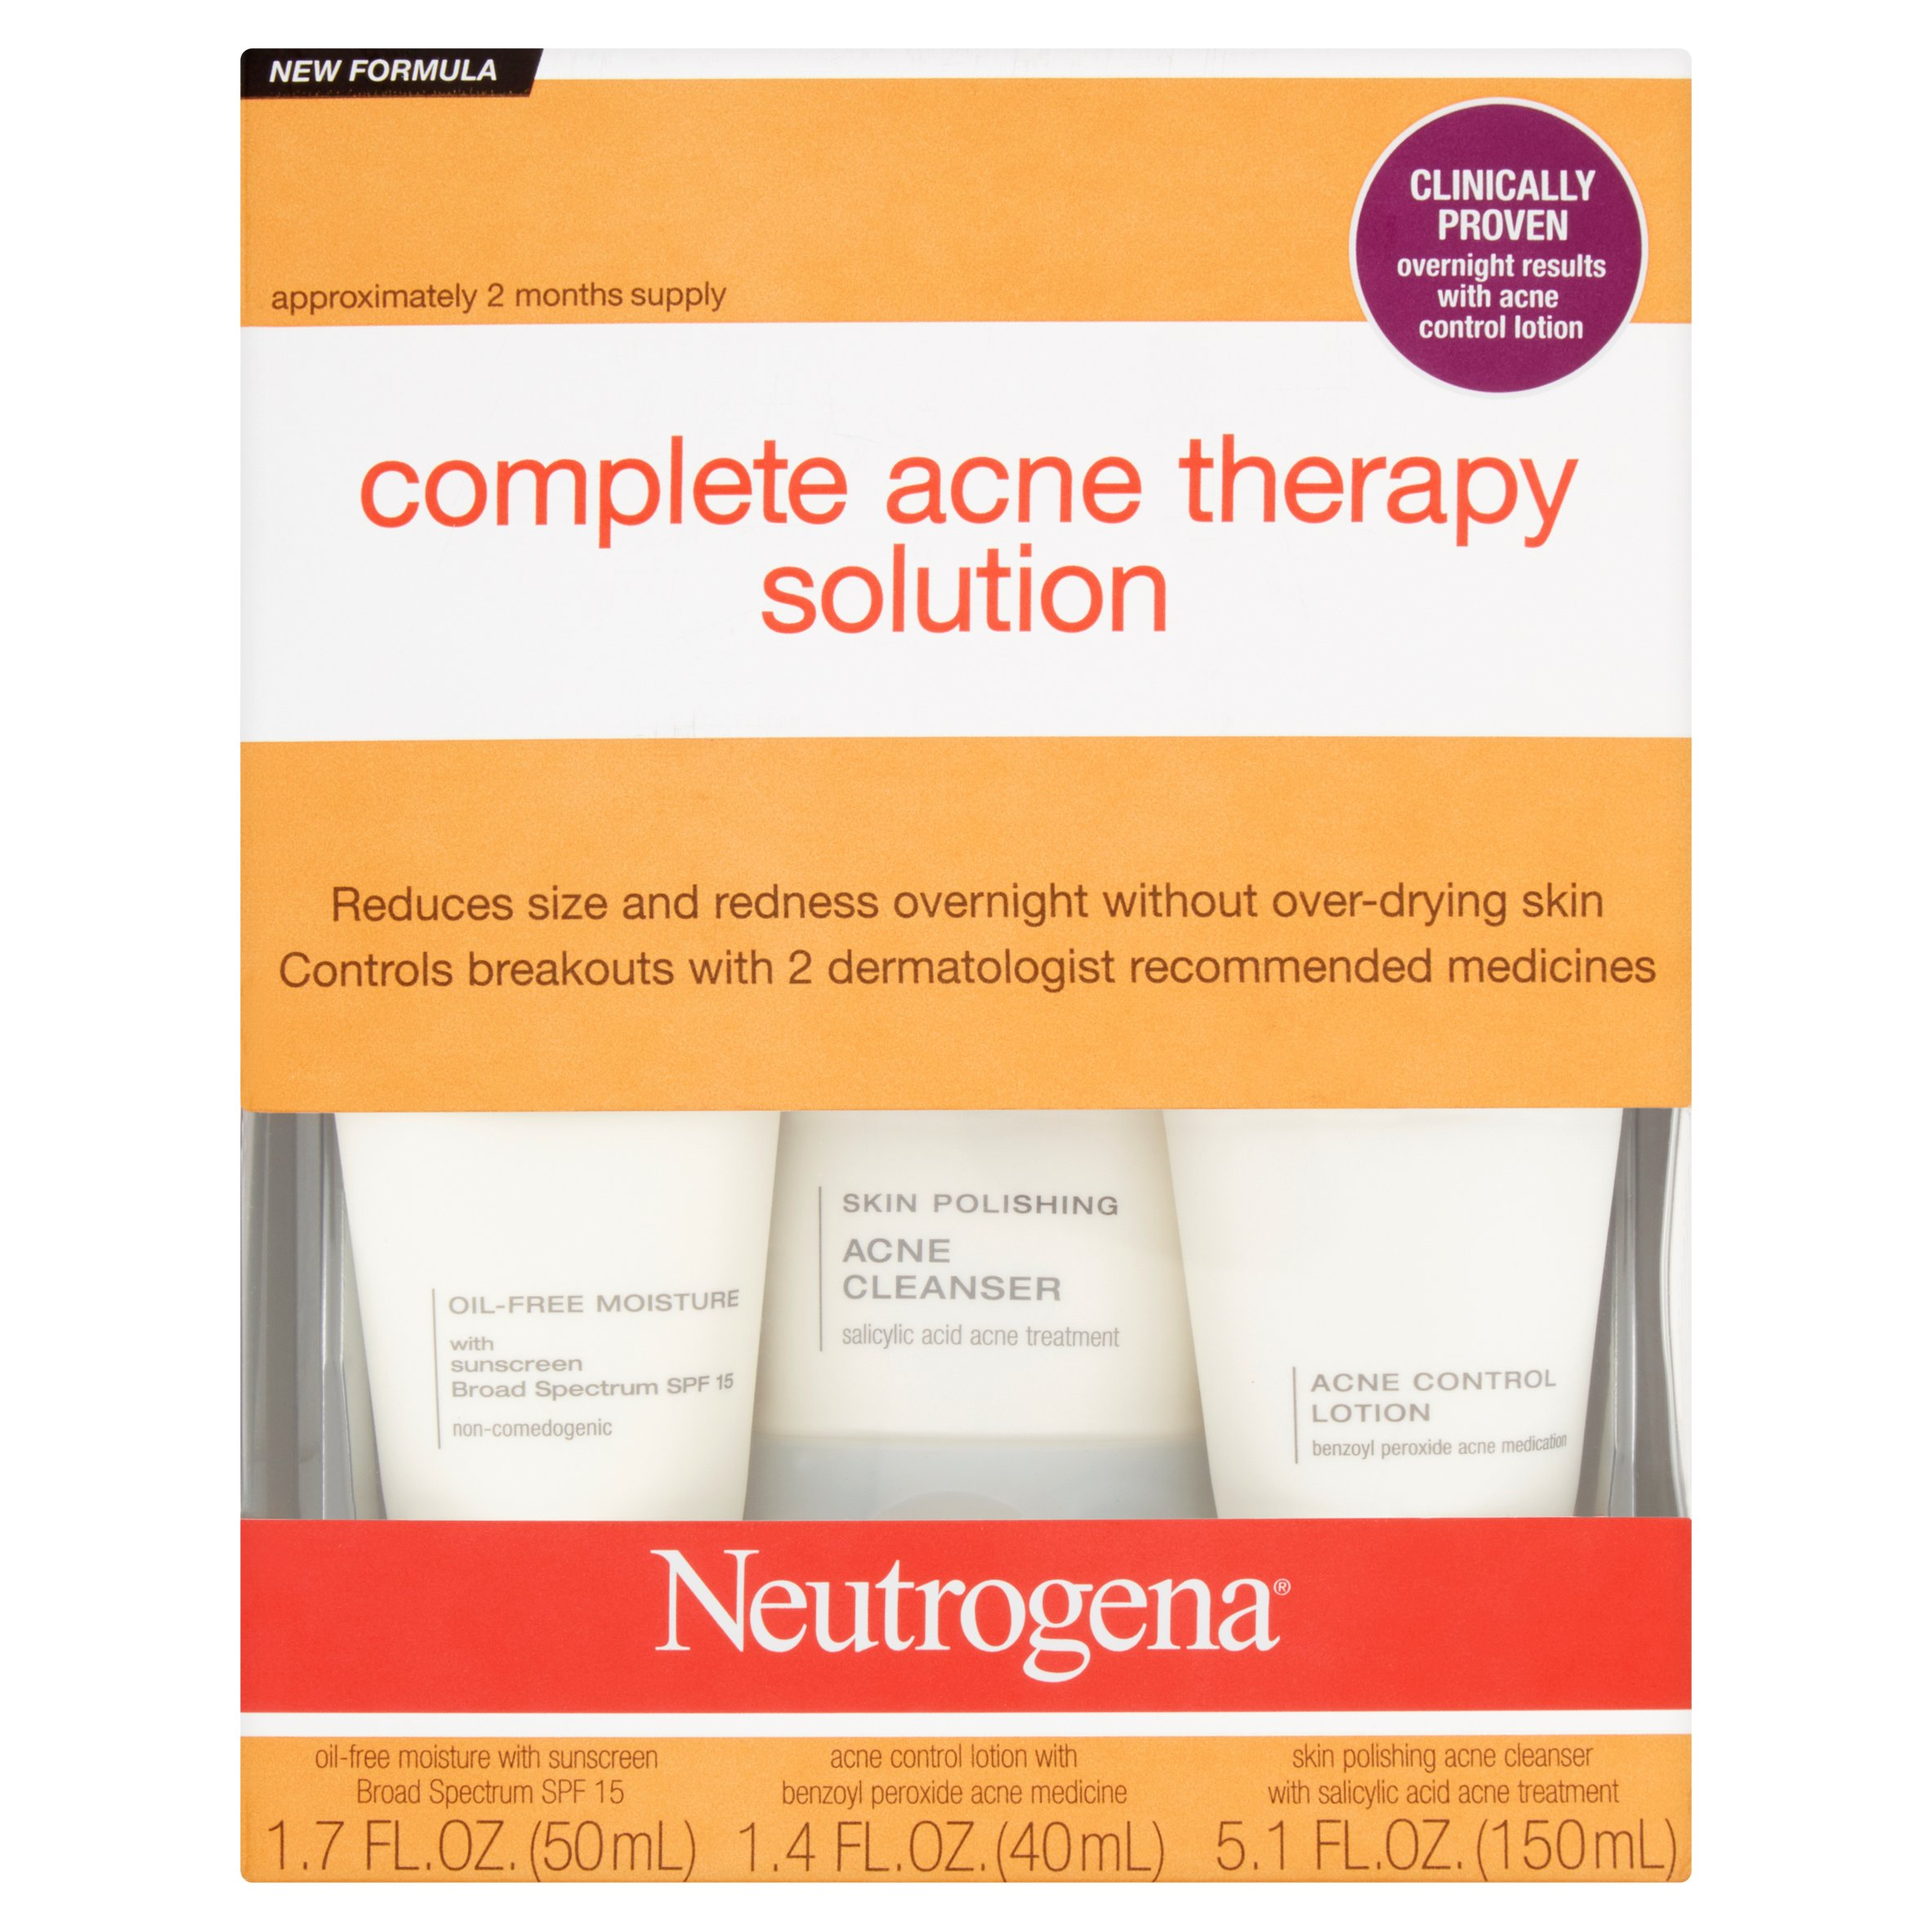 Neutrogena Complete Acne Therapy Solution Kit - Walmart.com